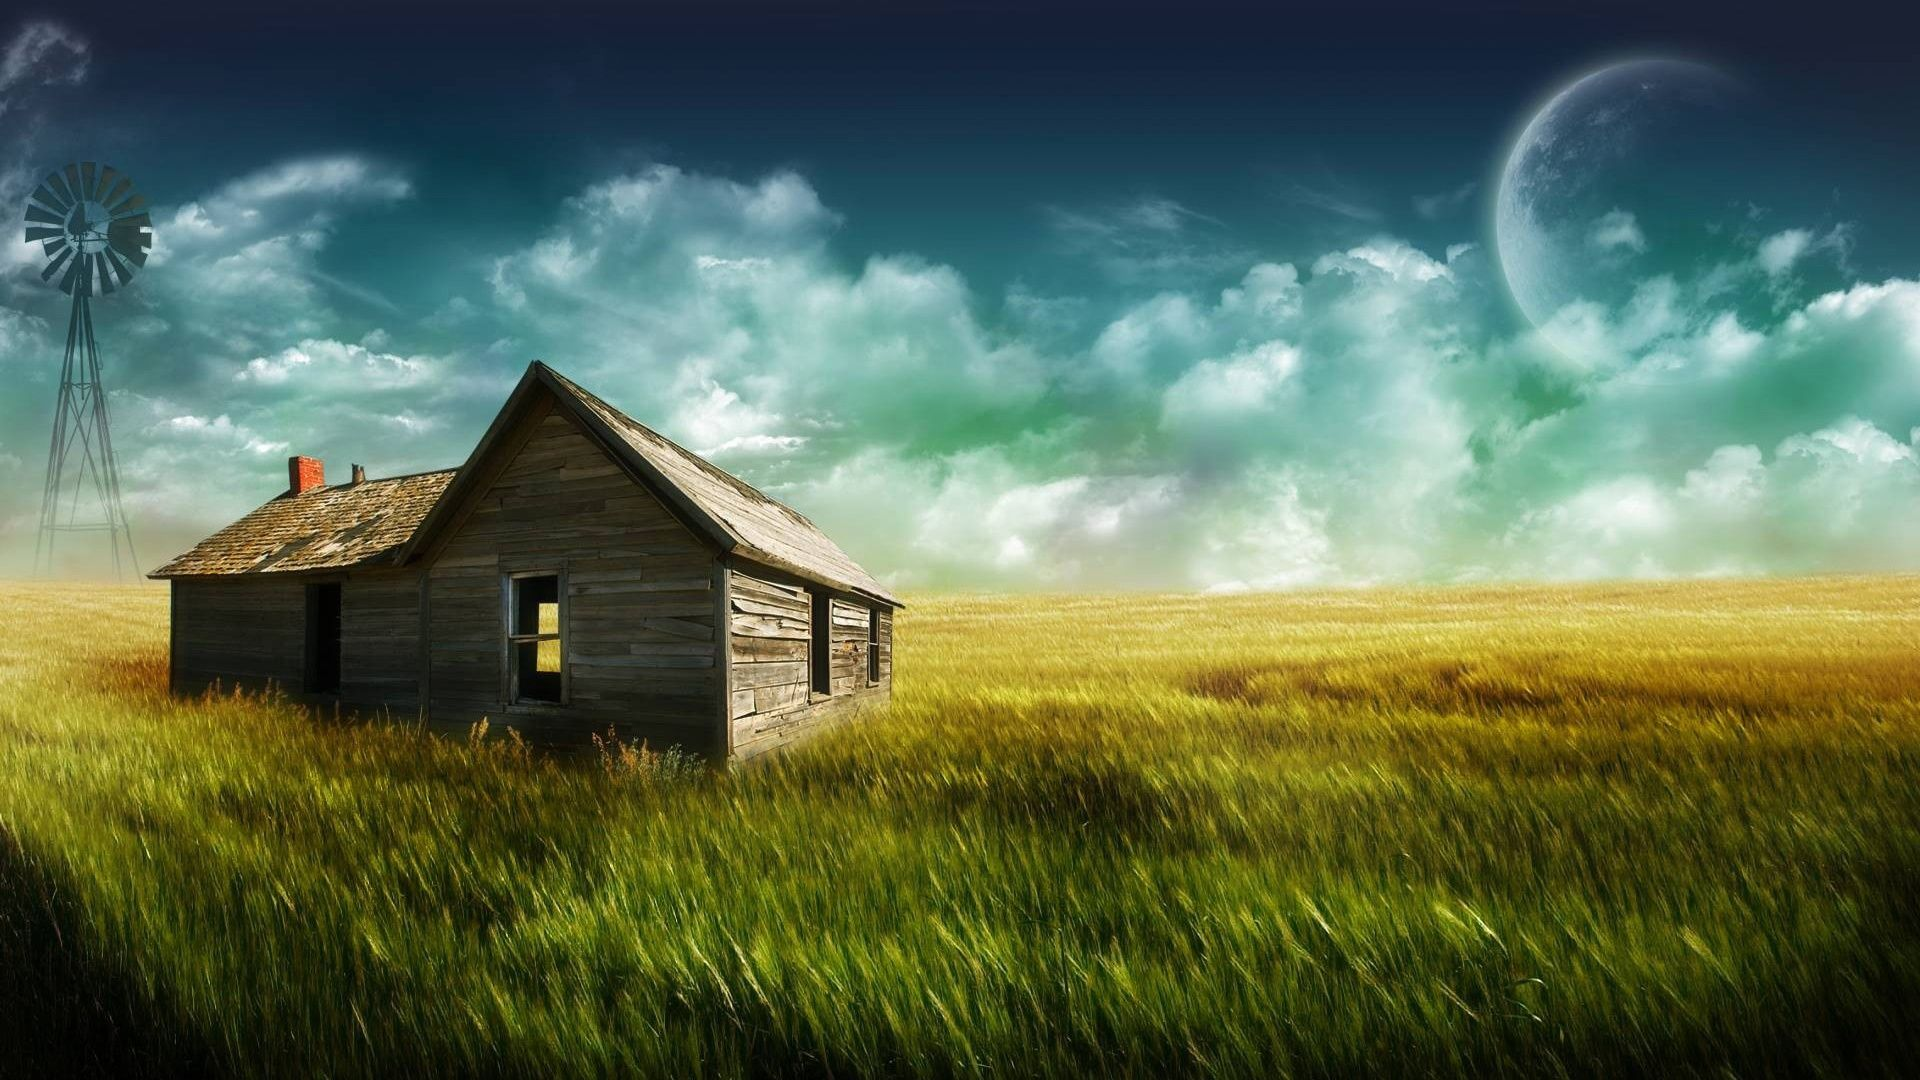 Ranches and Farms Backgrounds Right click on wallpaper